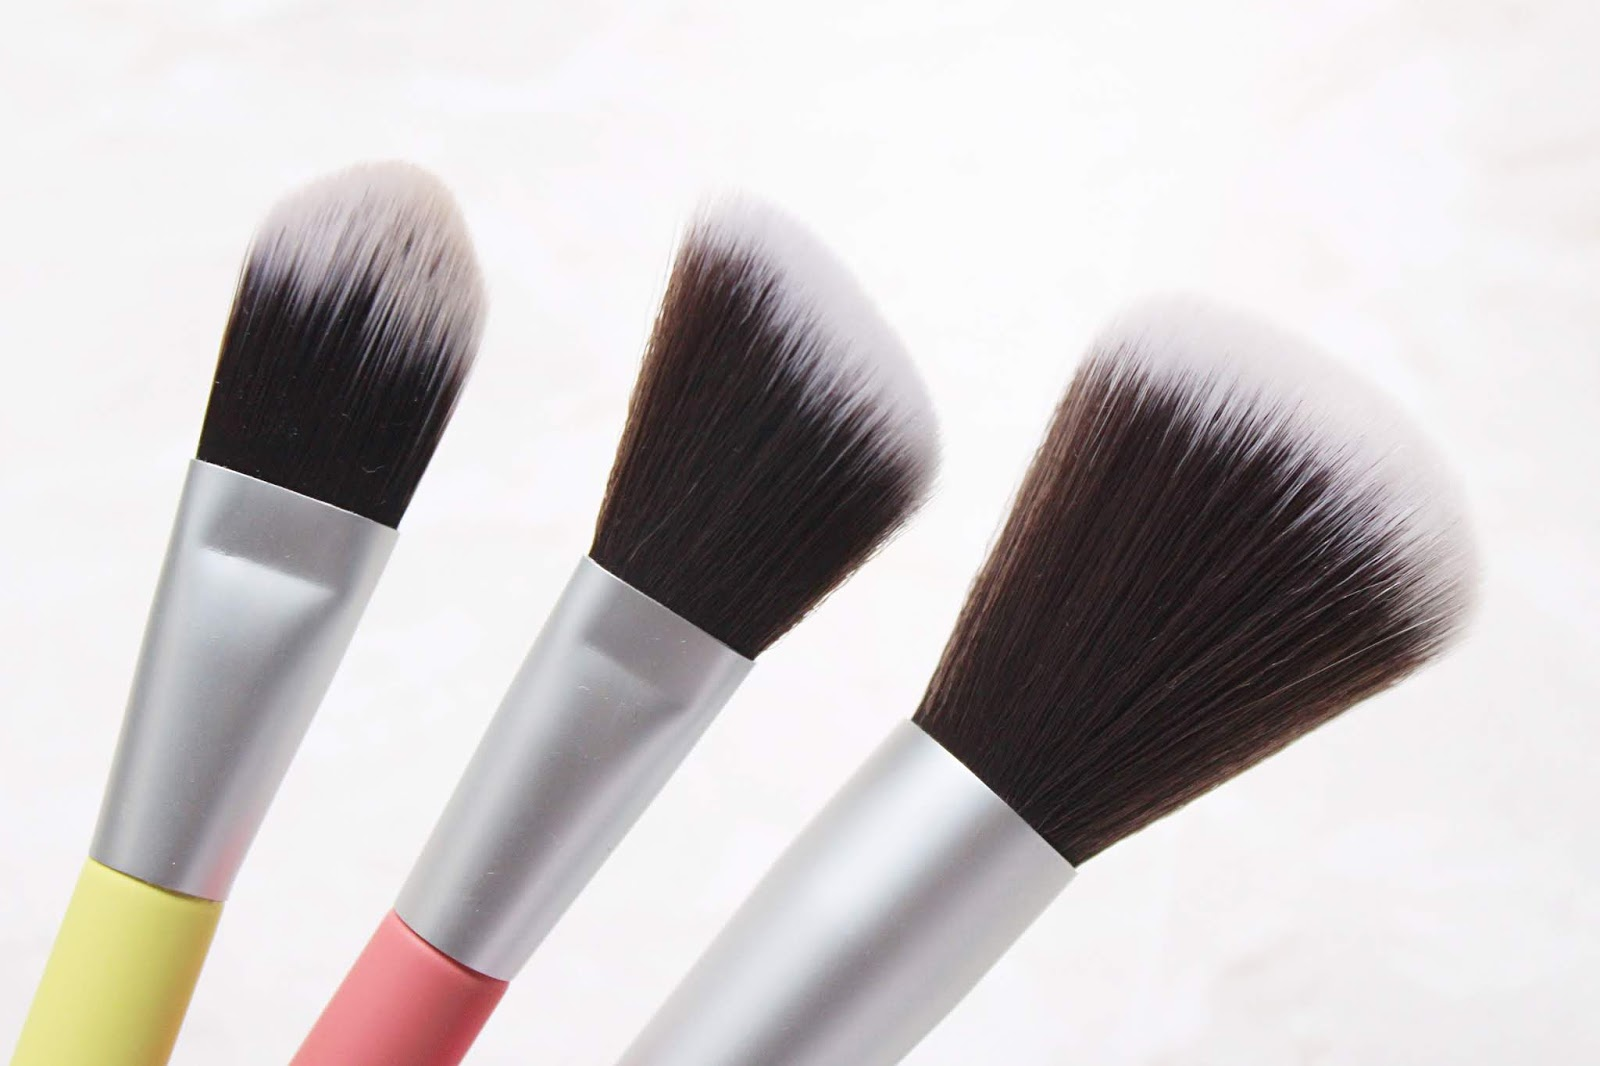 Benecos Vegan Face Brushes Review